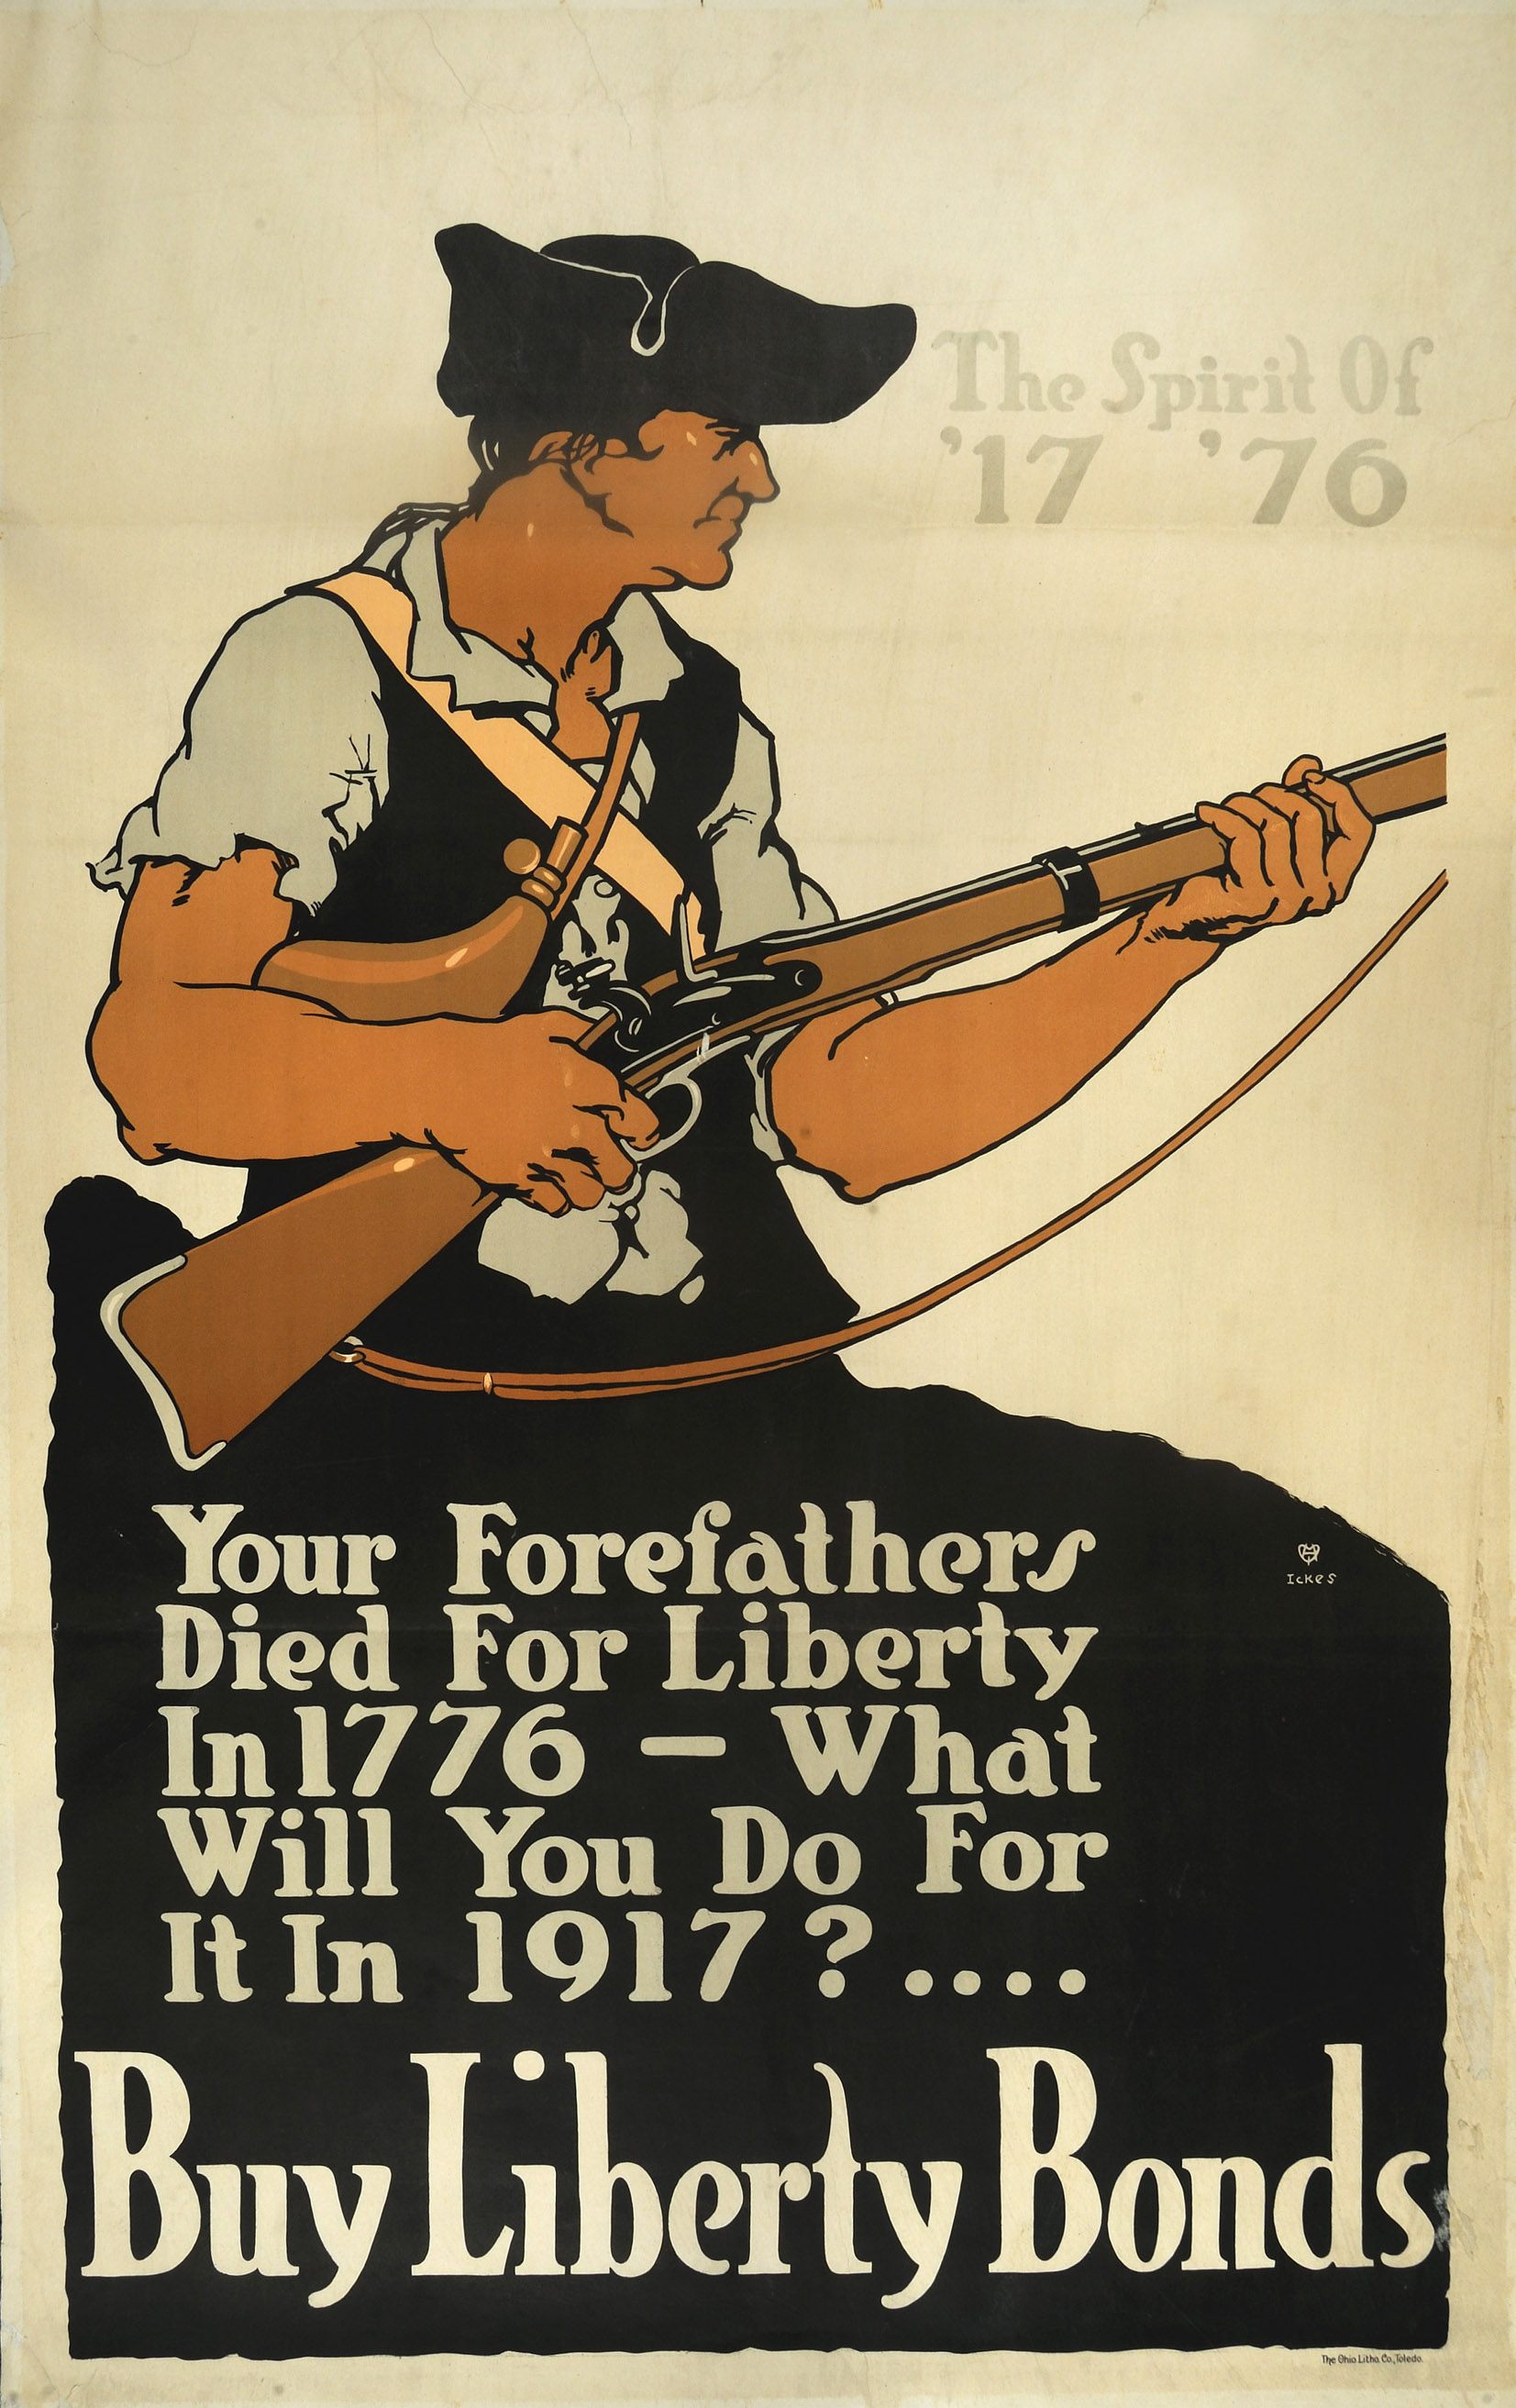 Your Forefathers Died For Liberty In 1776, Paul A. Ickes, Toledo, Ohio: Ohio Lithograph Company, 1917